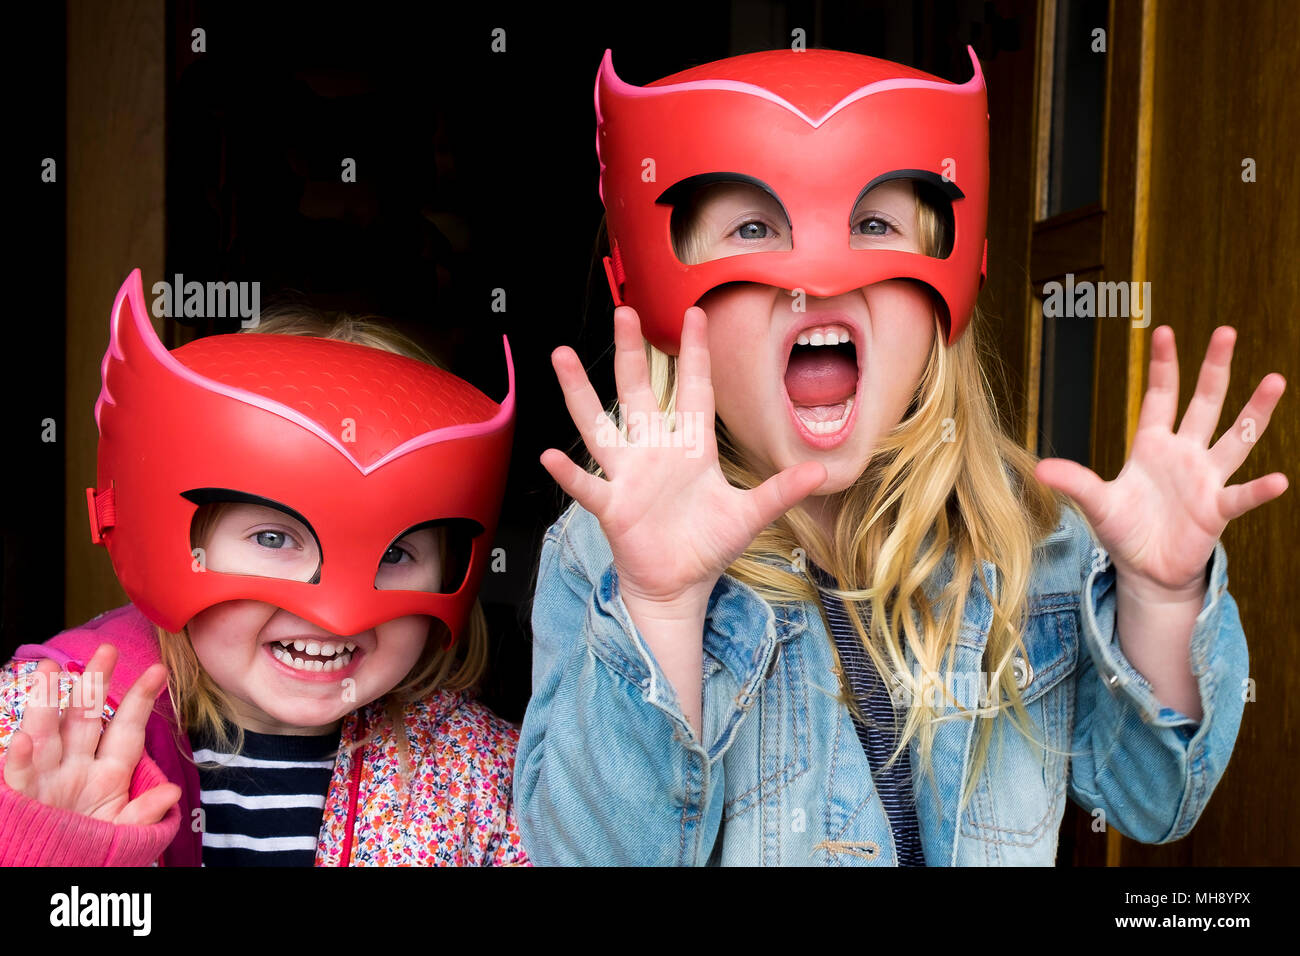 Les enfants s'amusant portant des masques. Photo Stock